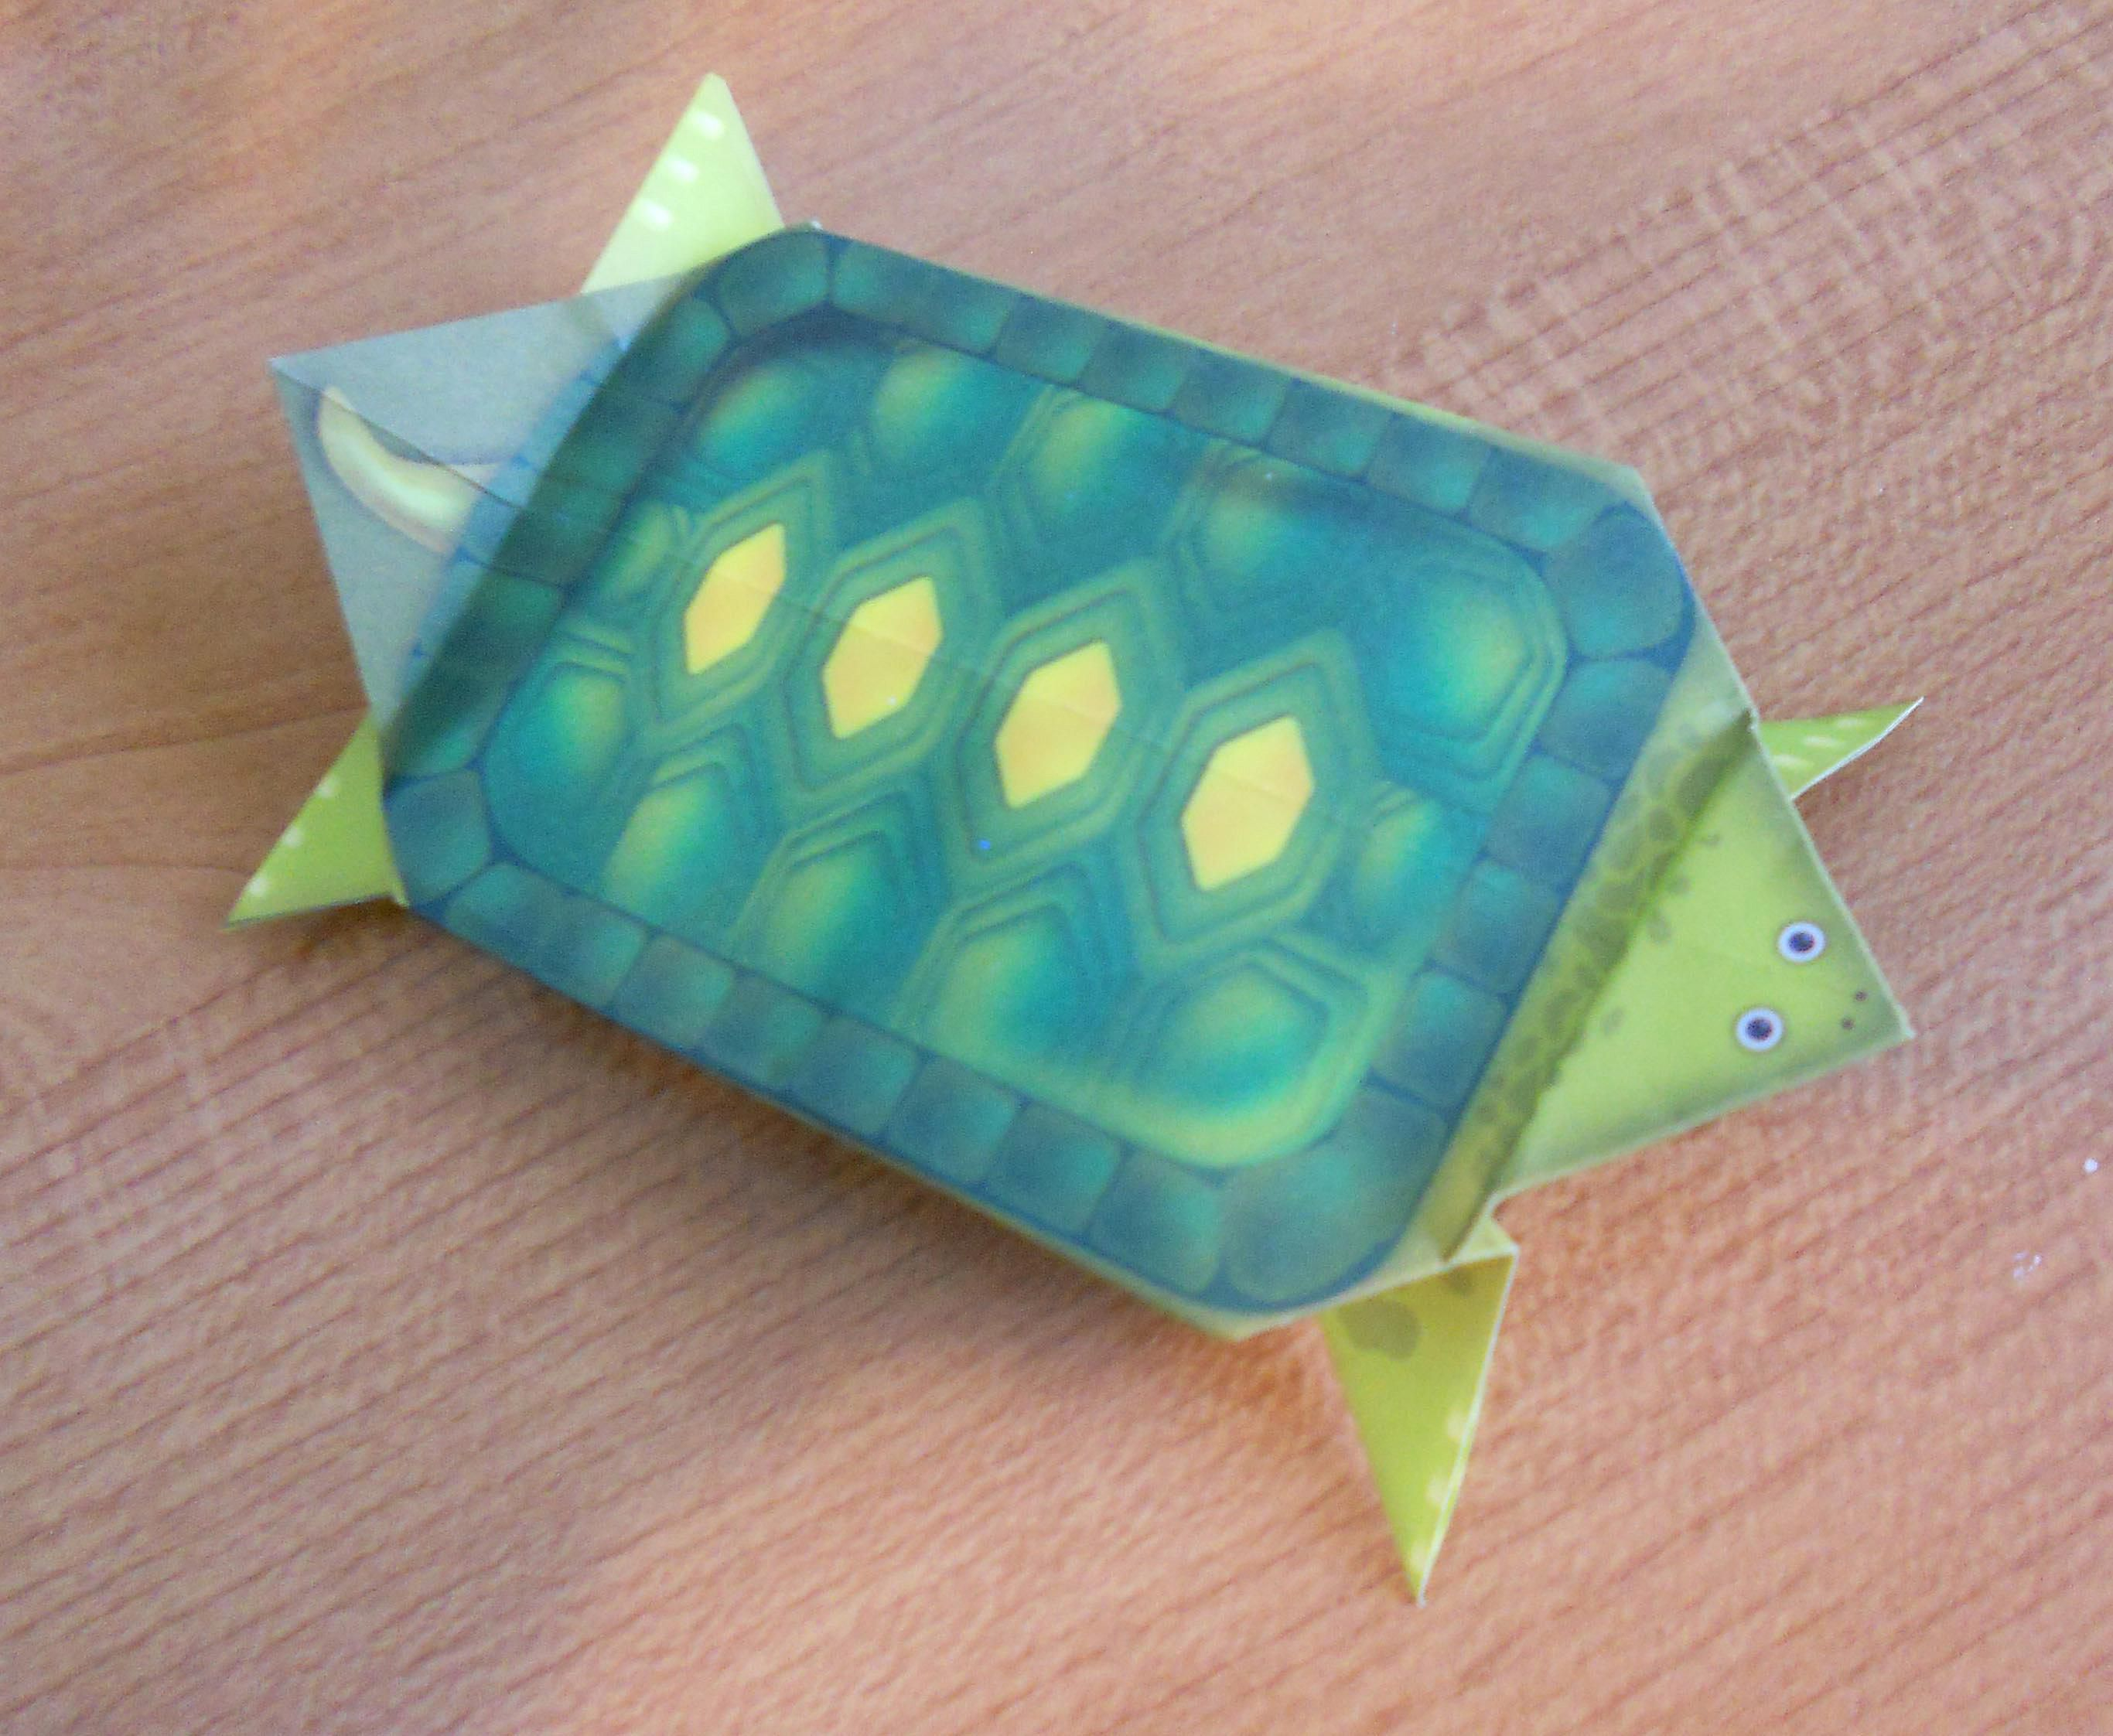 making it easy for kids to learn origami